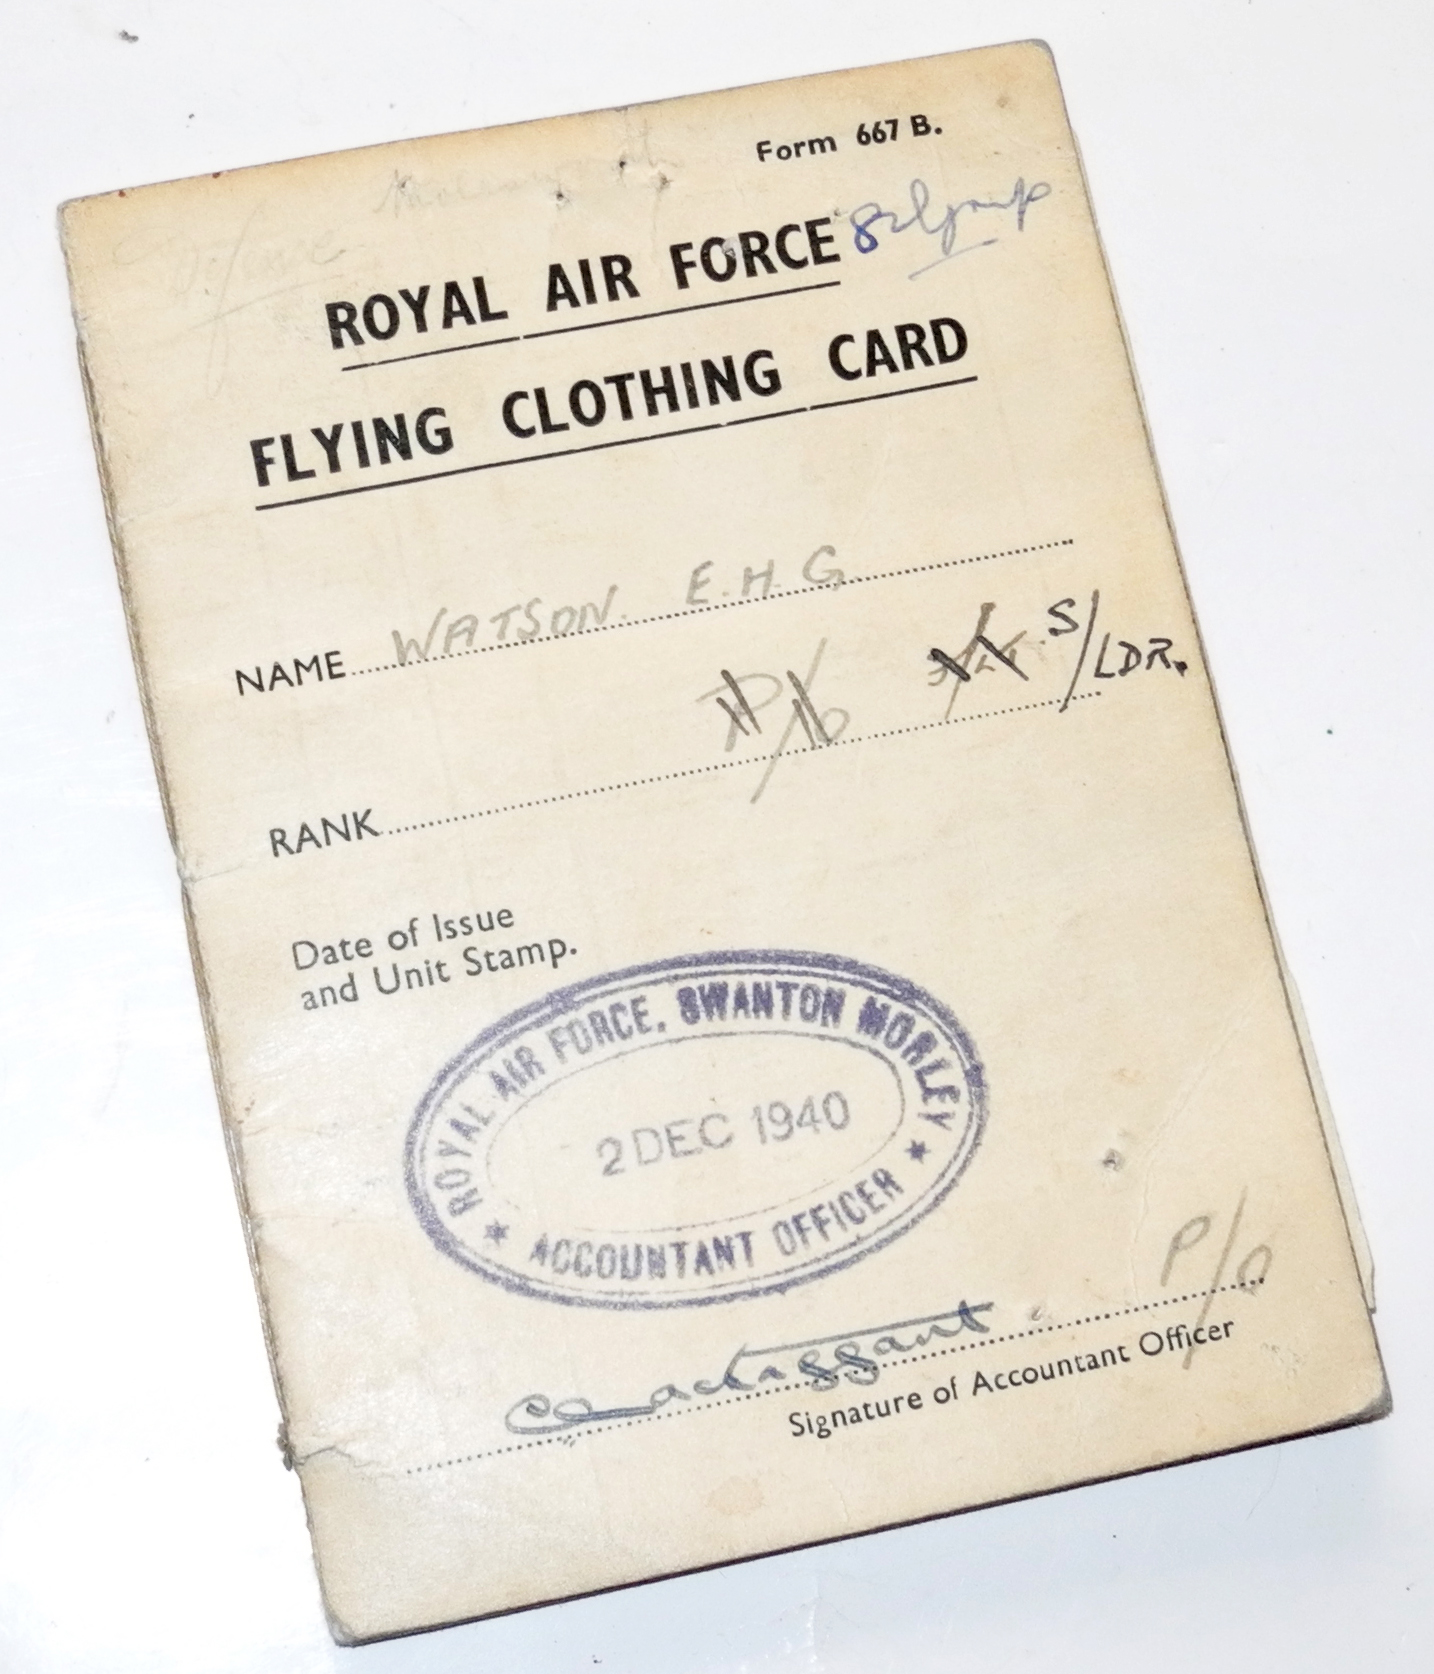 RAF Flying Clothing Card and other documentation to a Squadron Leader.